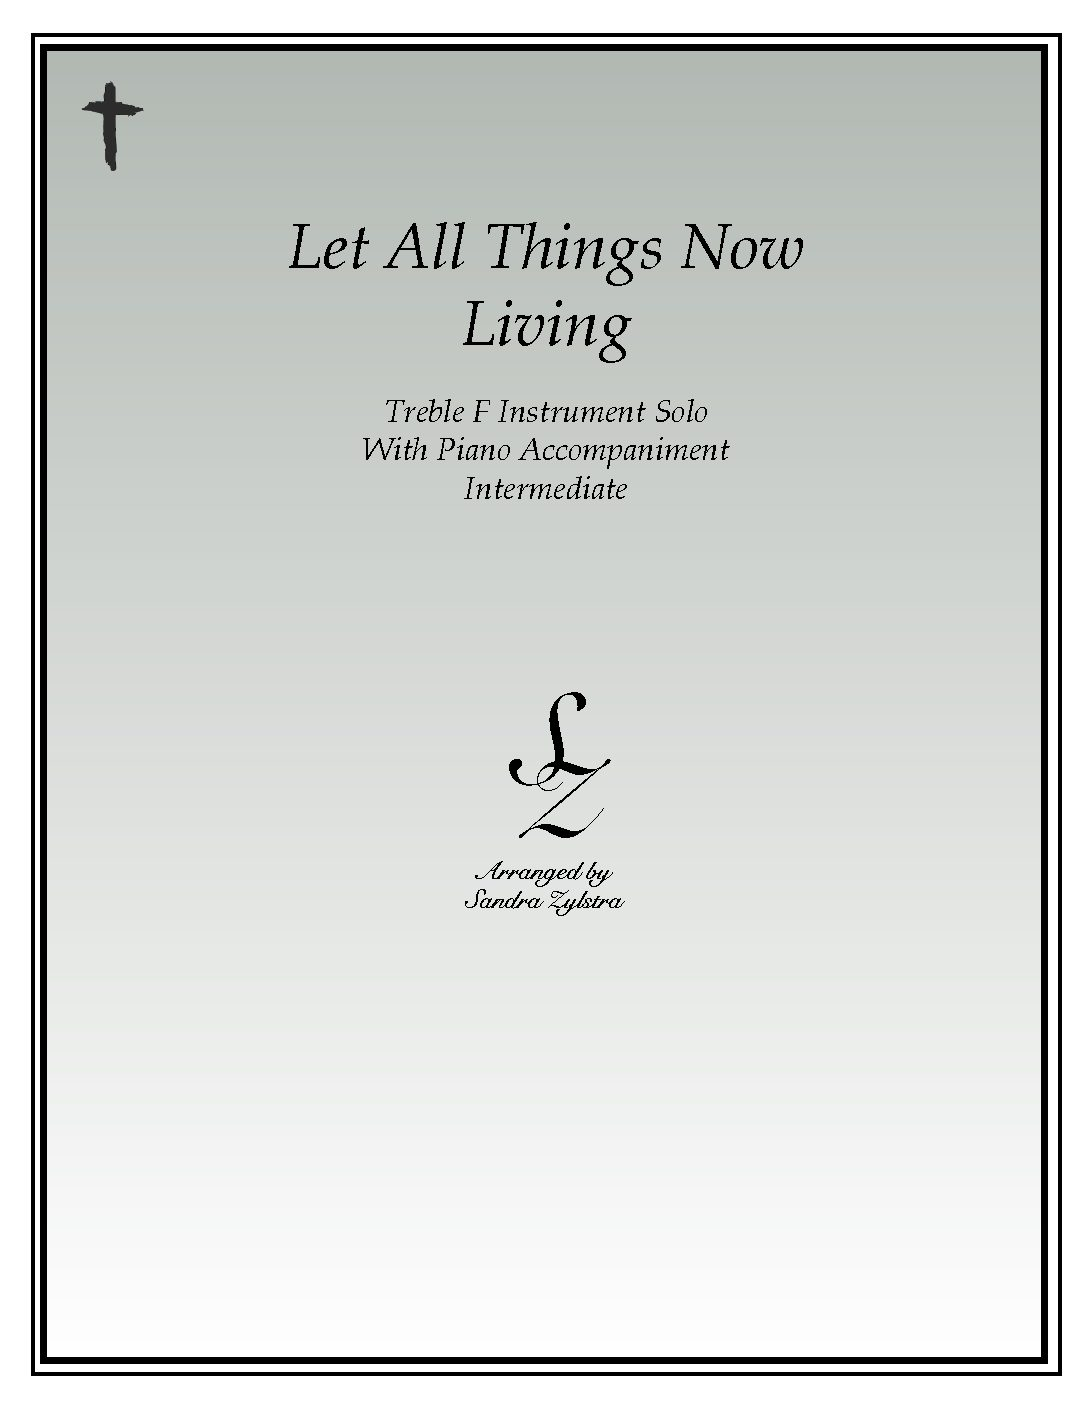 Let All Things Now Living -Treble F Instrument Solo